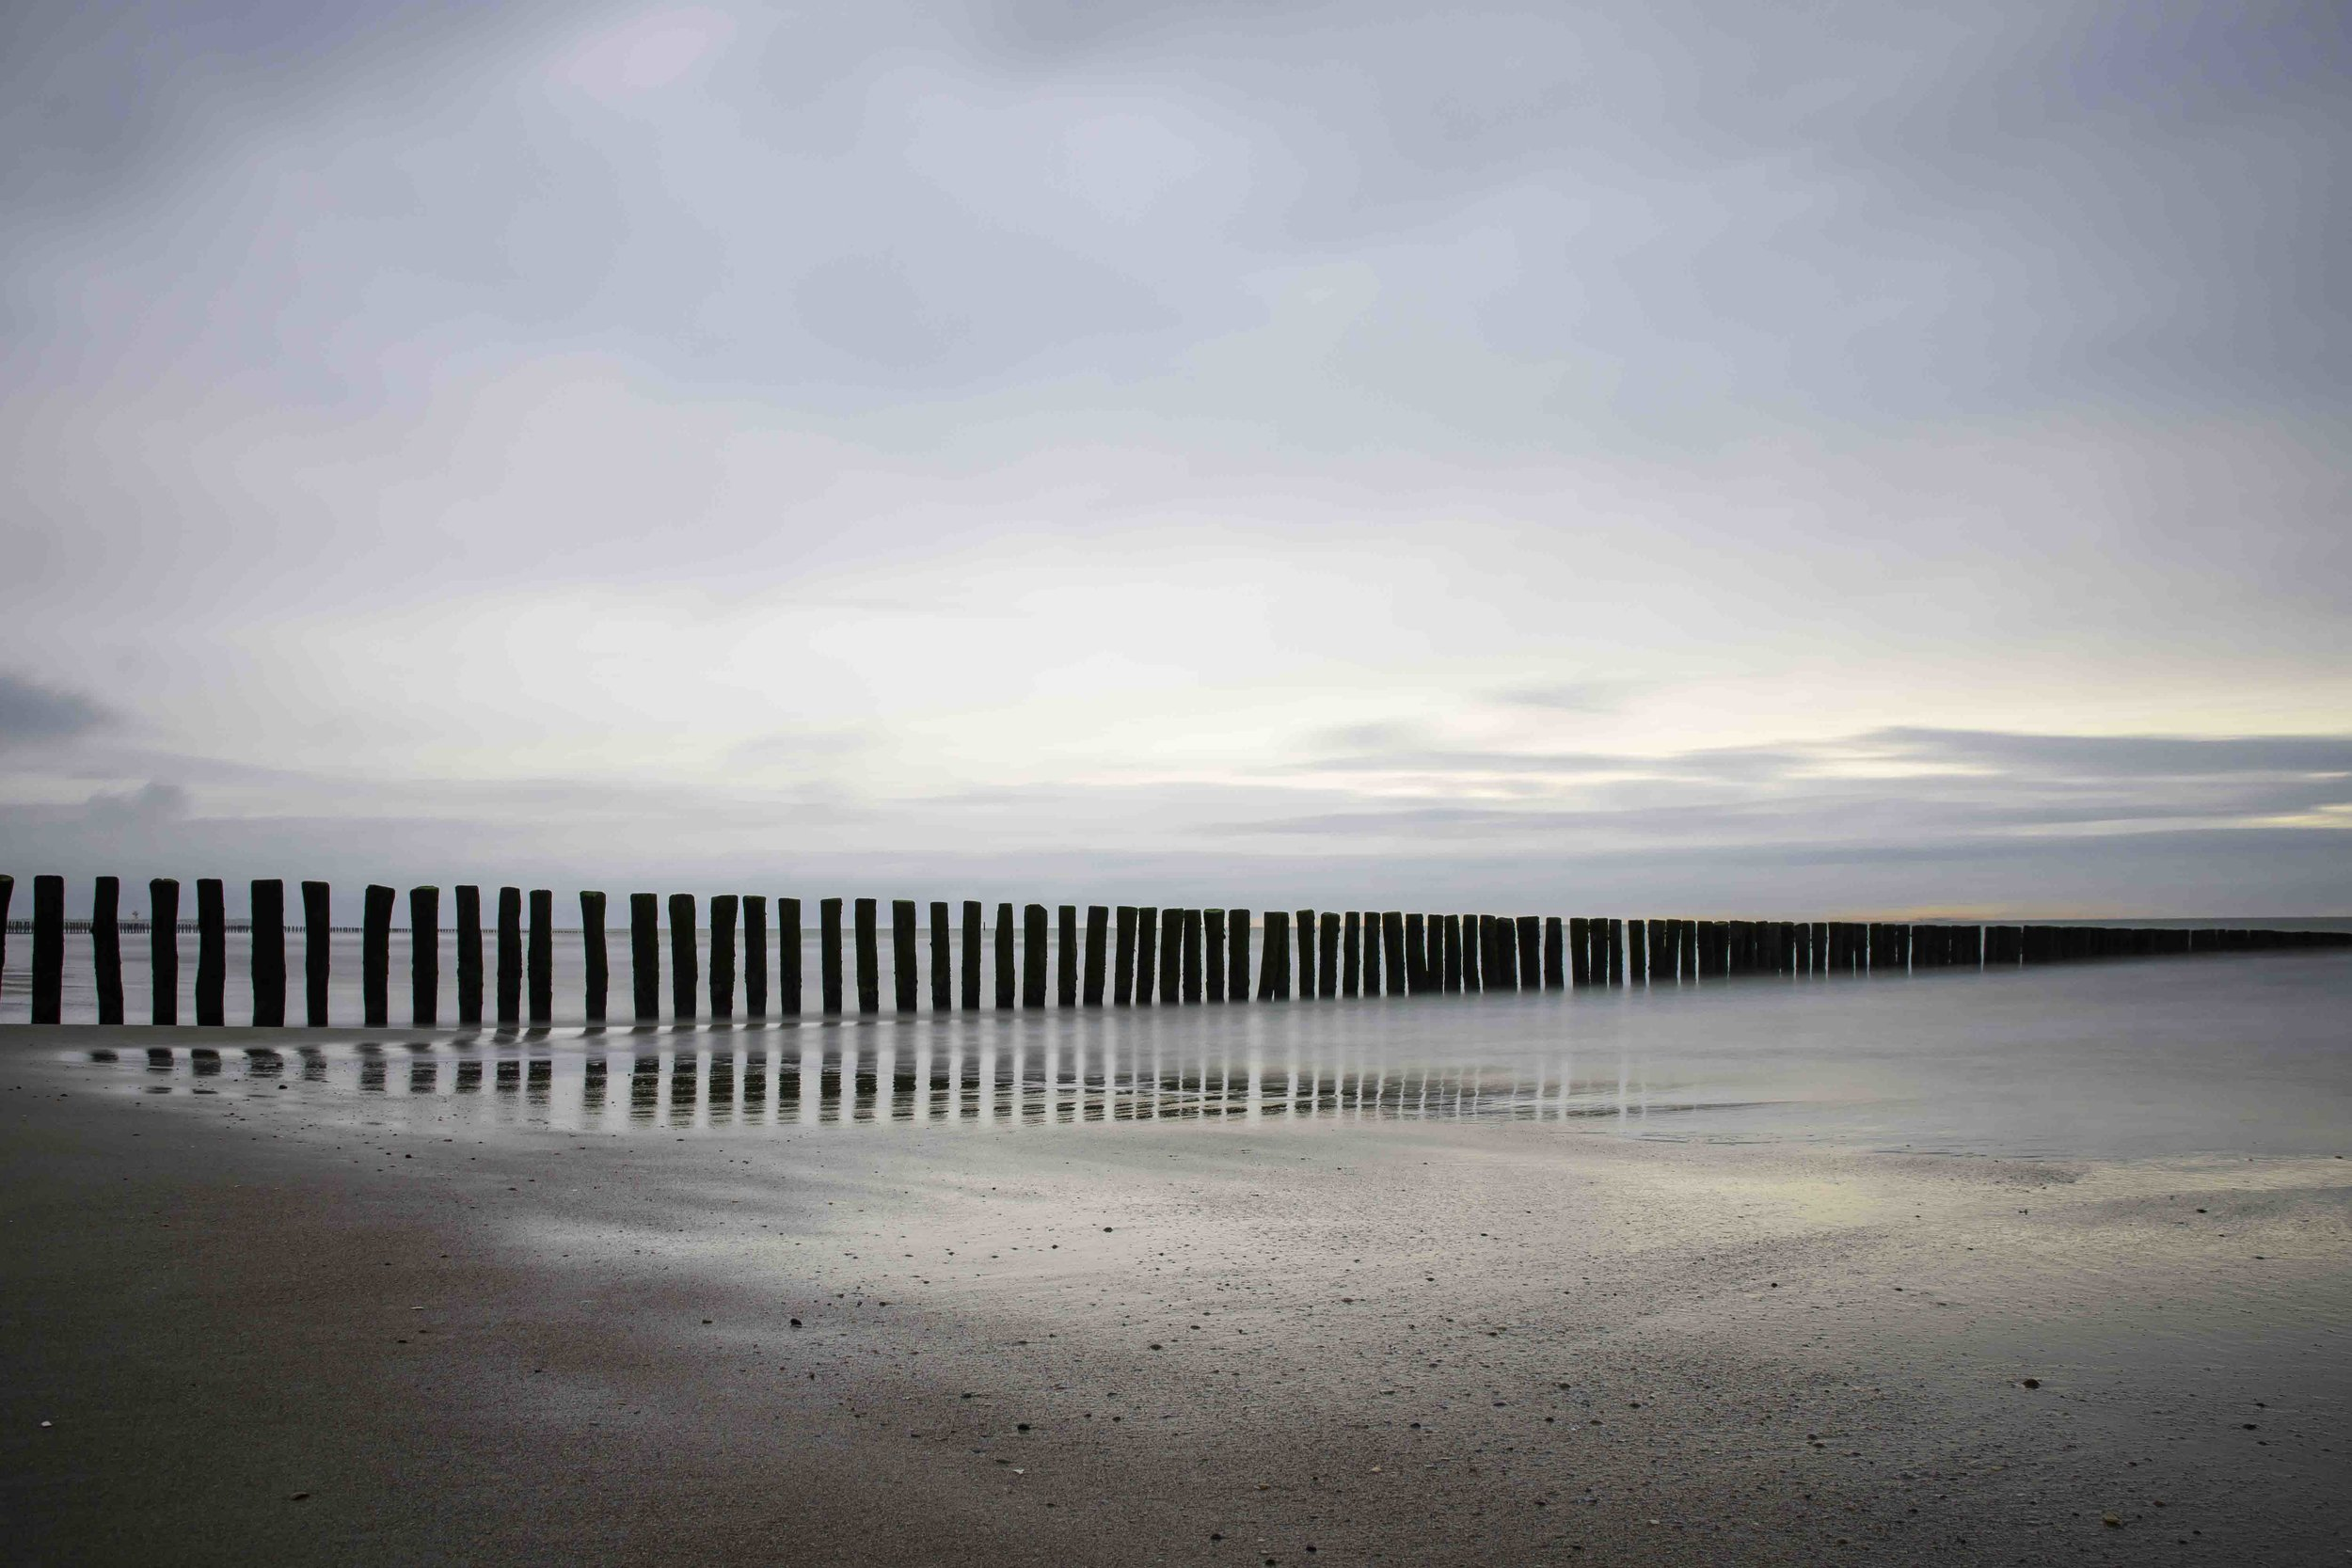 viewfinder-strand-cadzand-golfbreker-long-exposure-mirror-of-our-mind